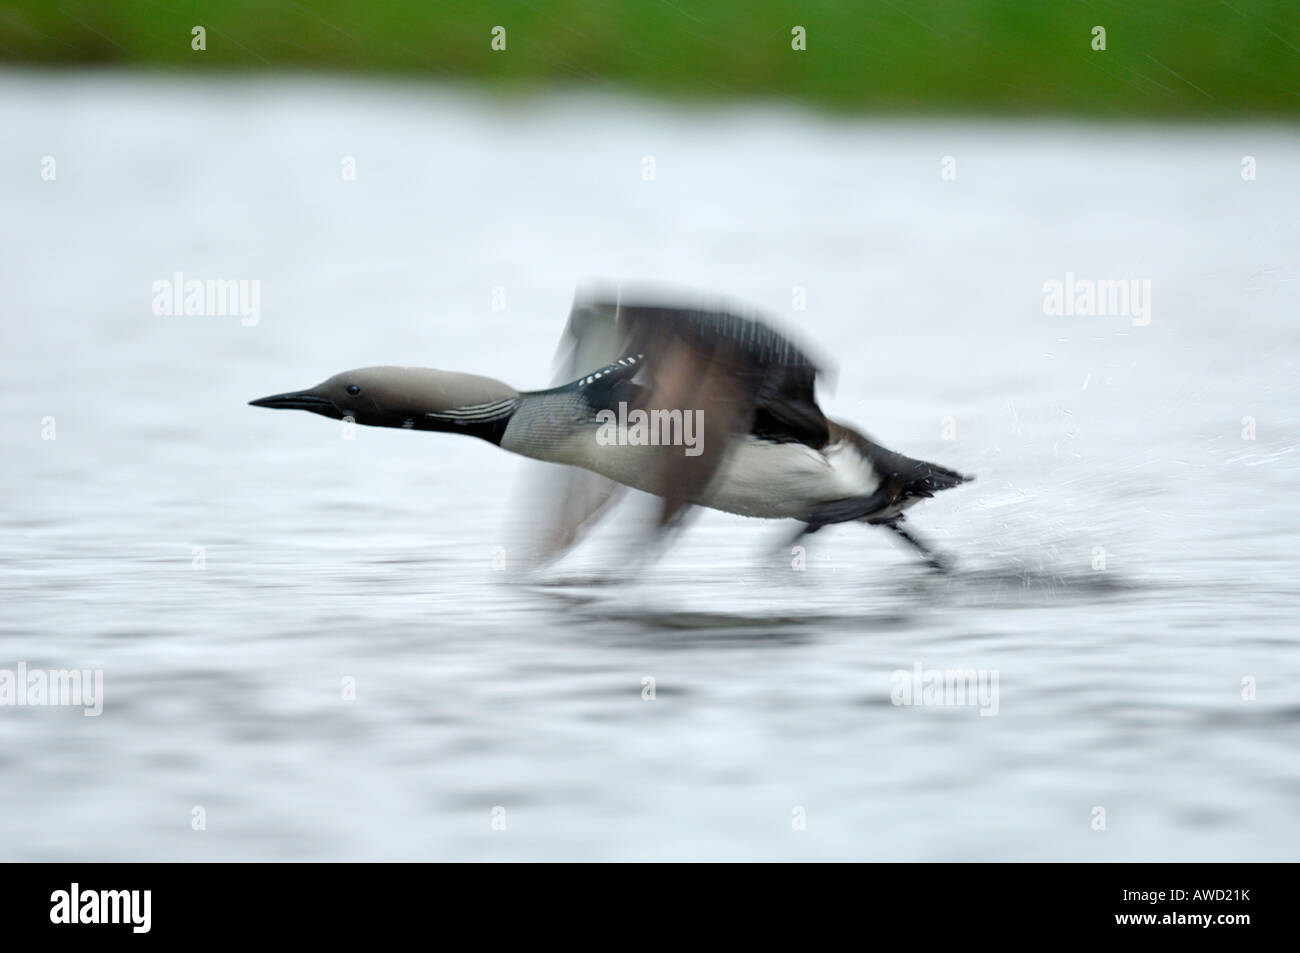 Arctic loon (Gavia arctica) taking off from the lake surface, Norway, Scandinavia, Europe Stock Photo